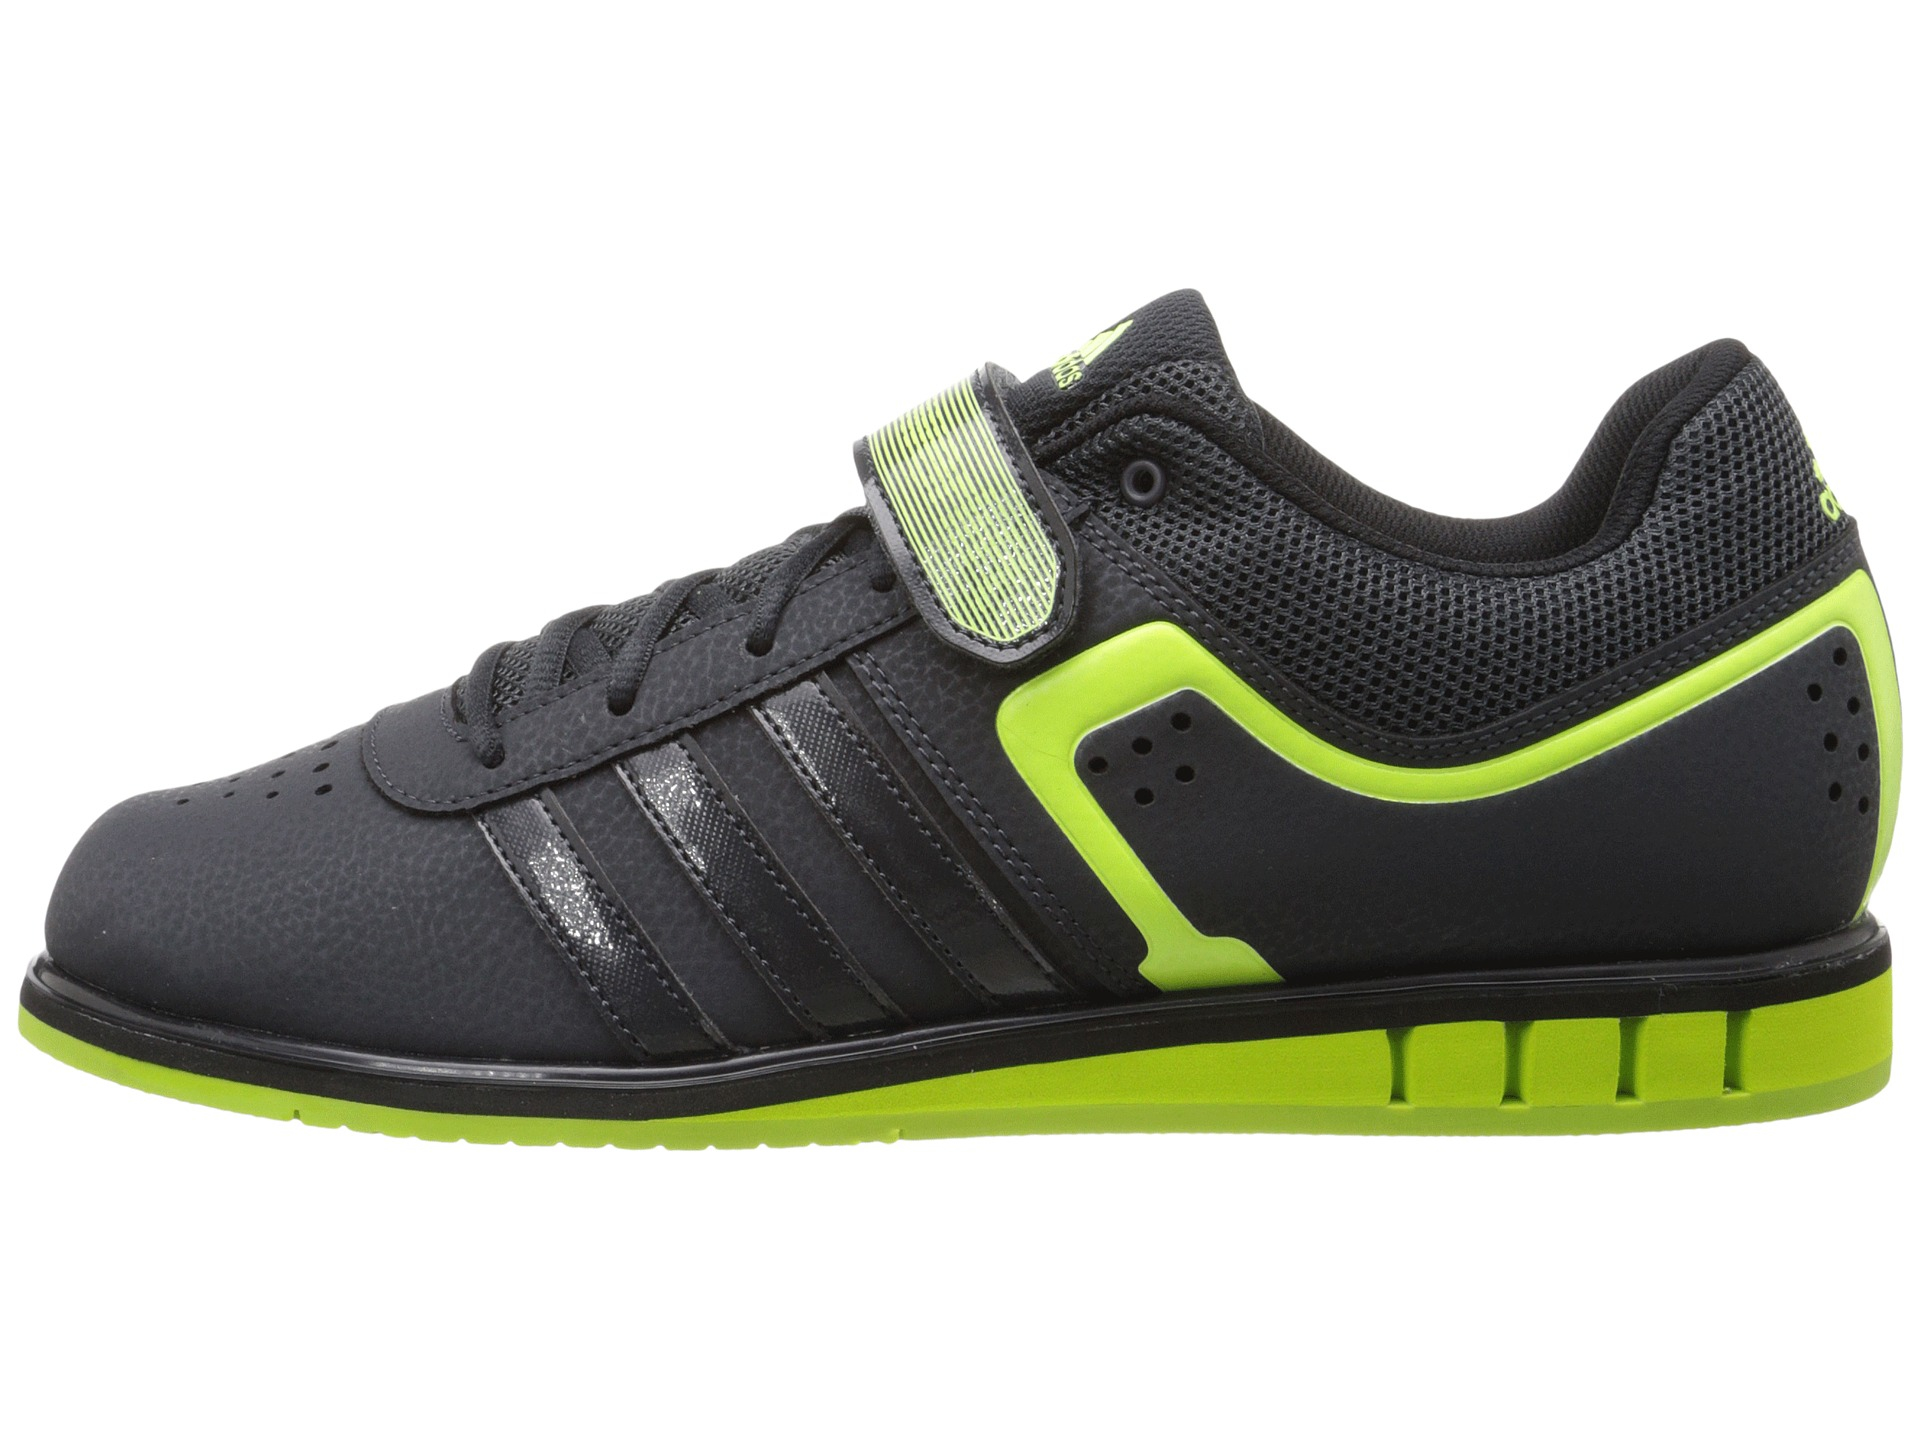 High Cut Weight Lifting Shoes